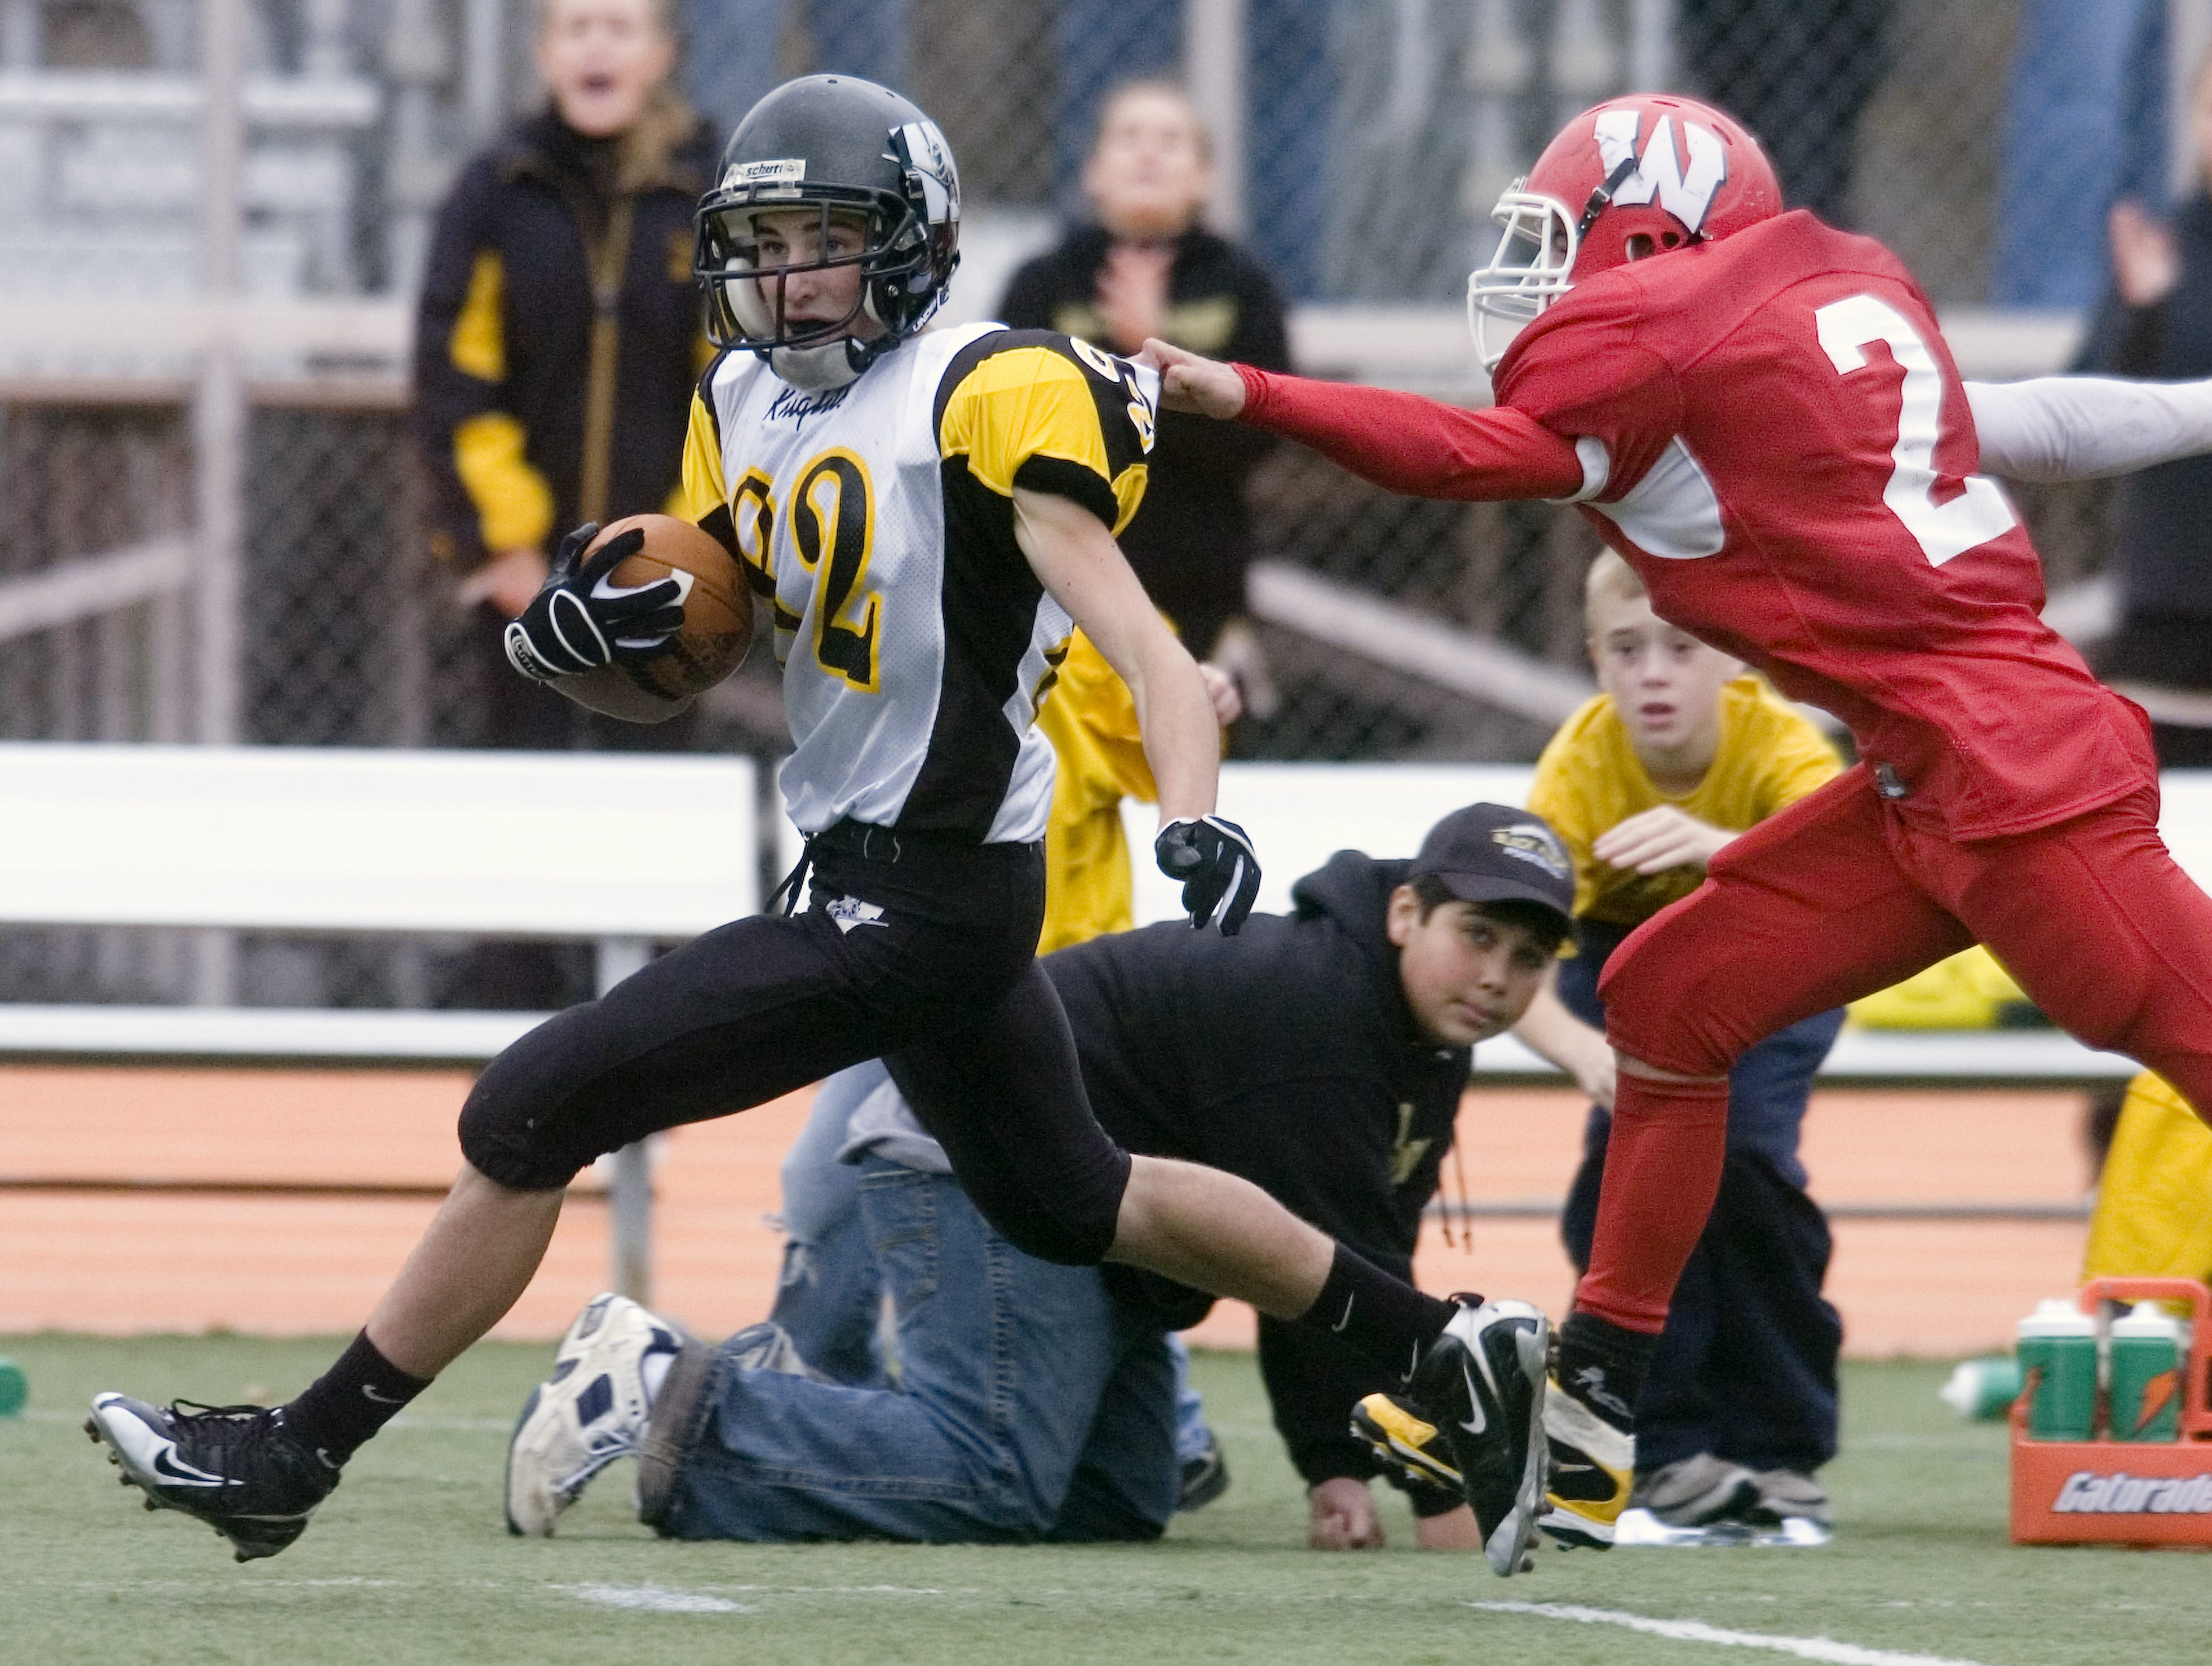 From 2008: Waverly's Brett Sewalt, right, grabs Windsor's Mike Gnall in the fourth quarter of Saturday's game at Ty Cobb Stadium.